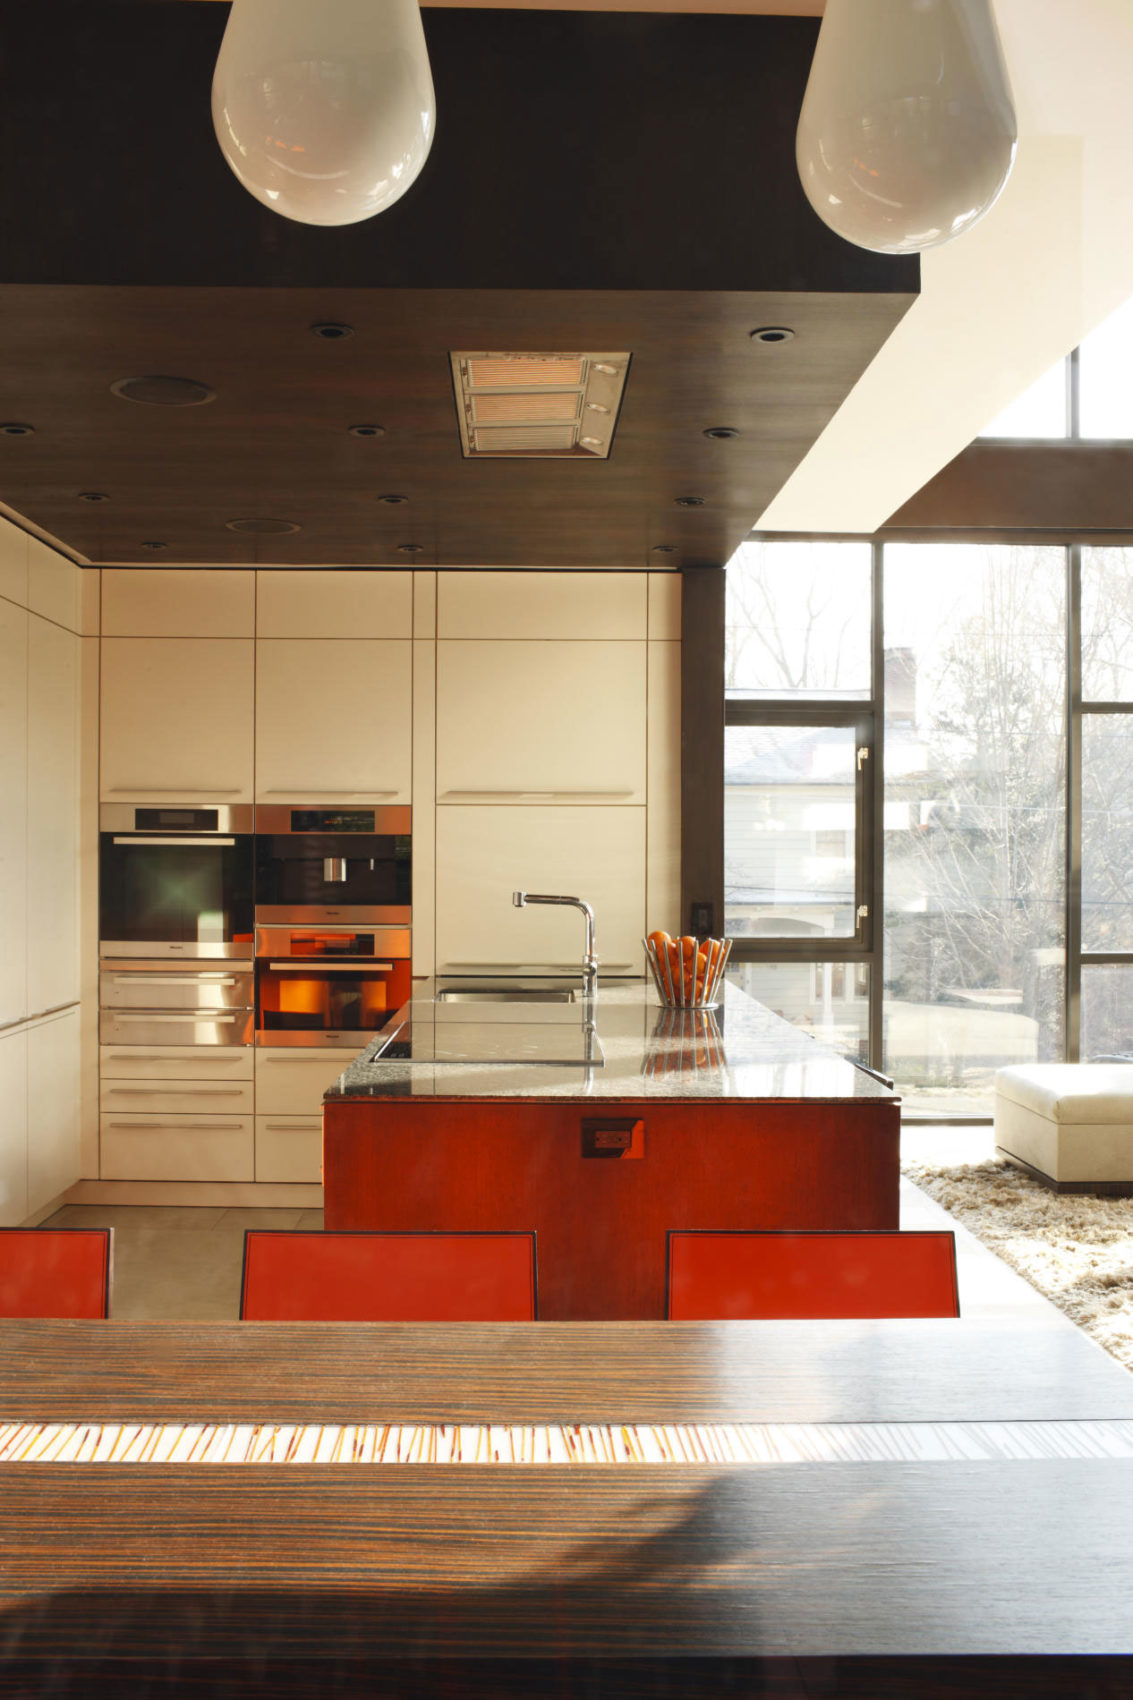 Ansley Modern Interior by Habachy Designs (3)